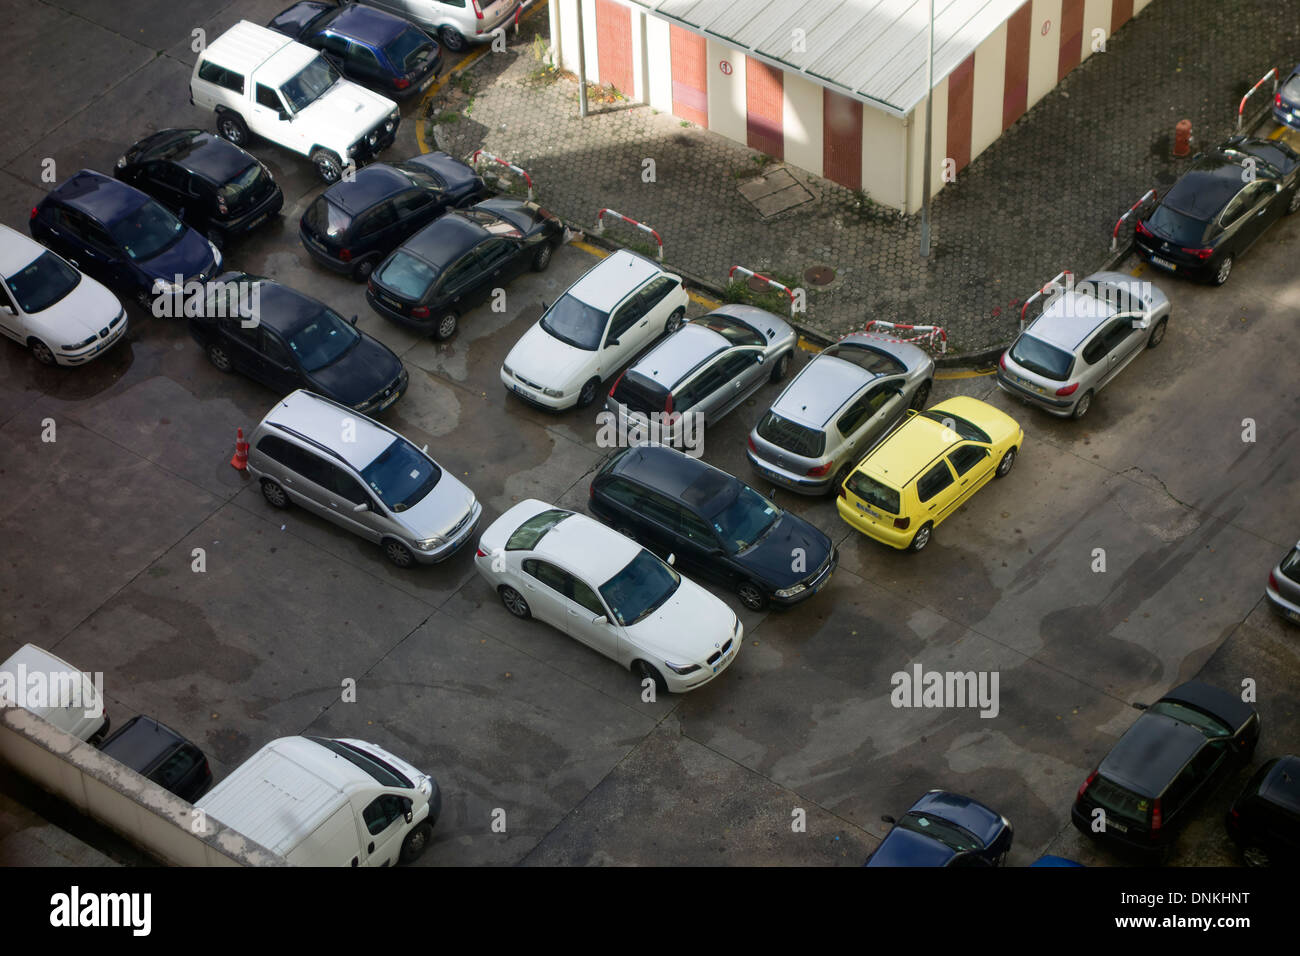 Aerial view of badly parked cars - Stock Image